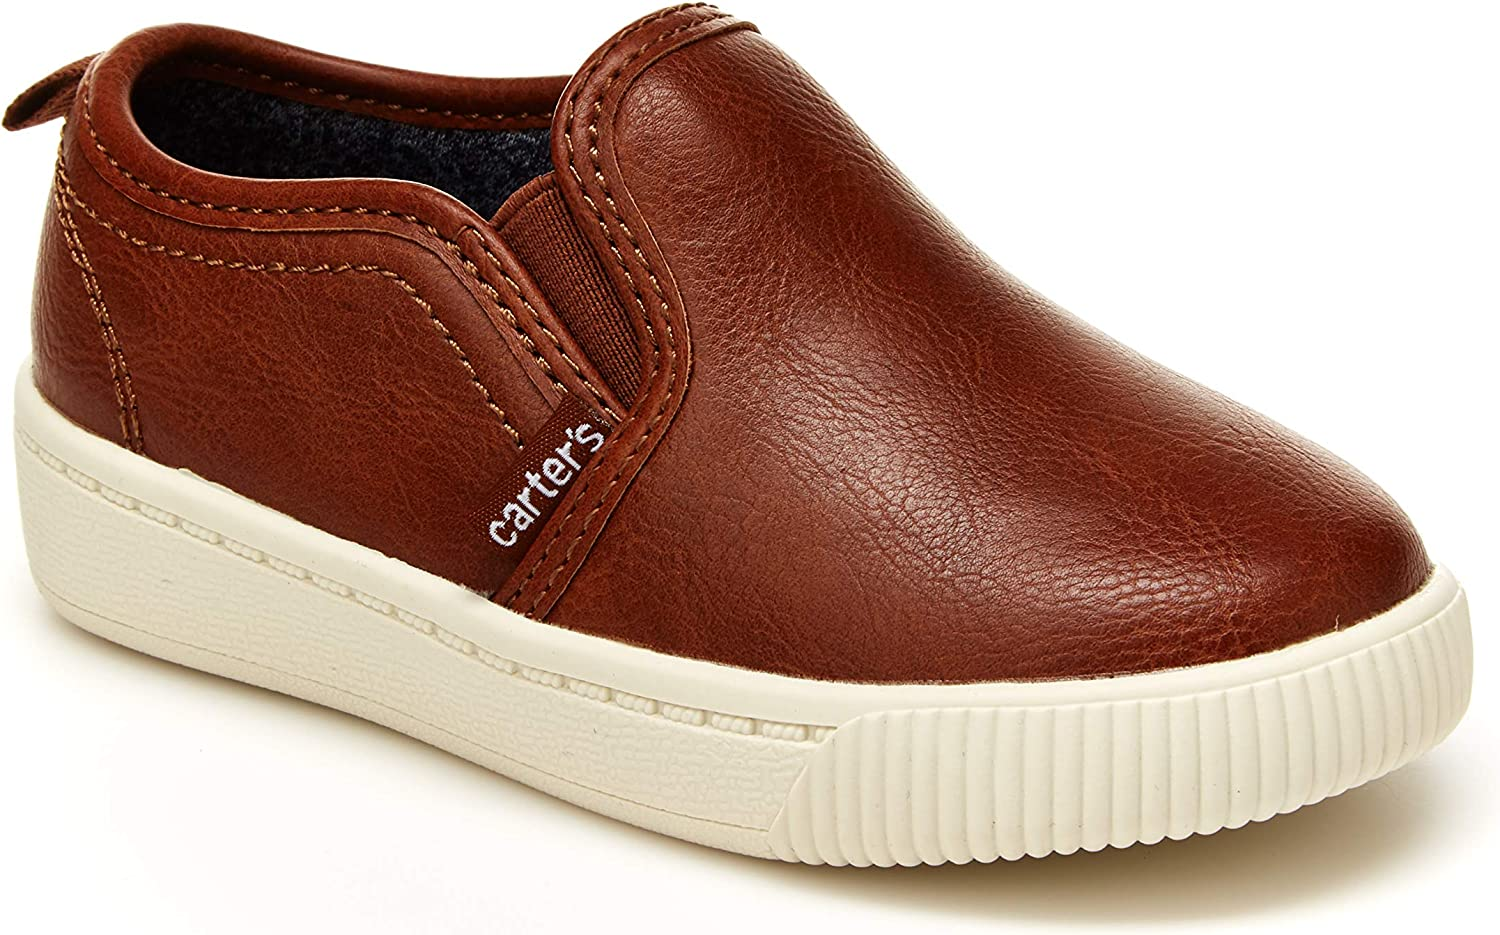 Carter's Unisex-Child Sales of SALE items from new Very popular! works Sneaker Ricky